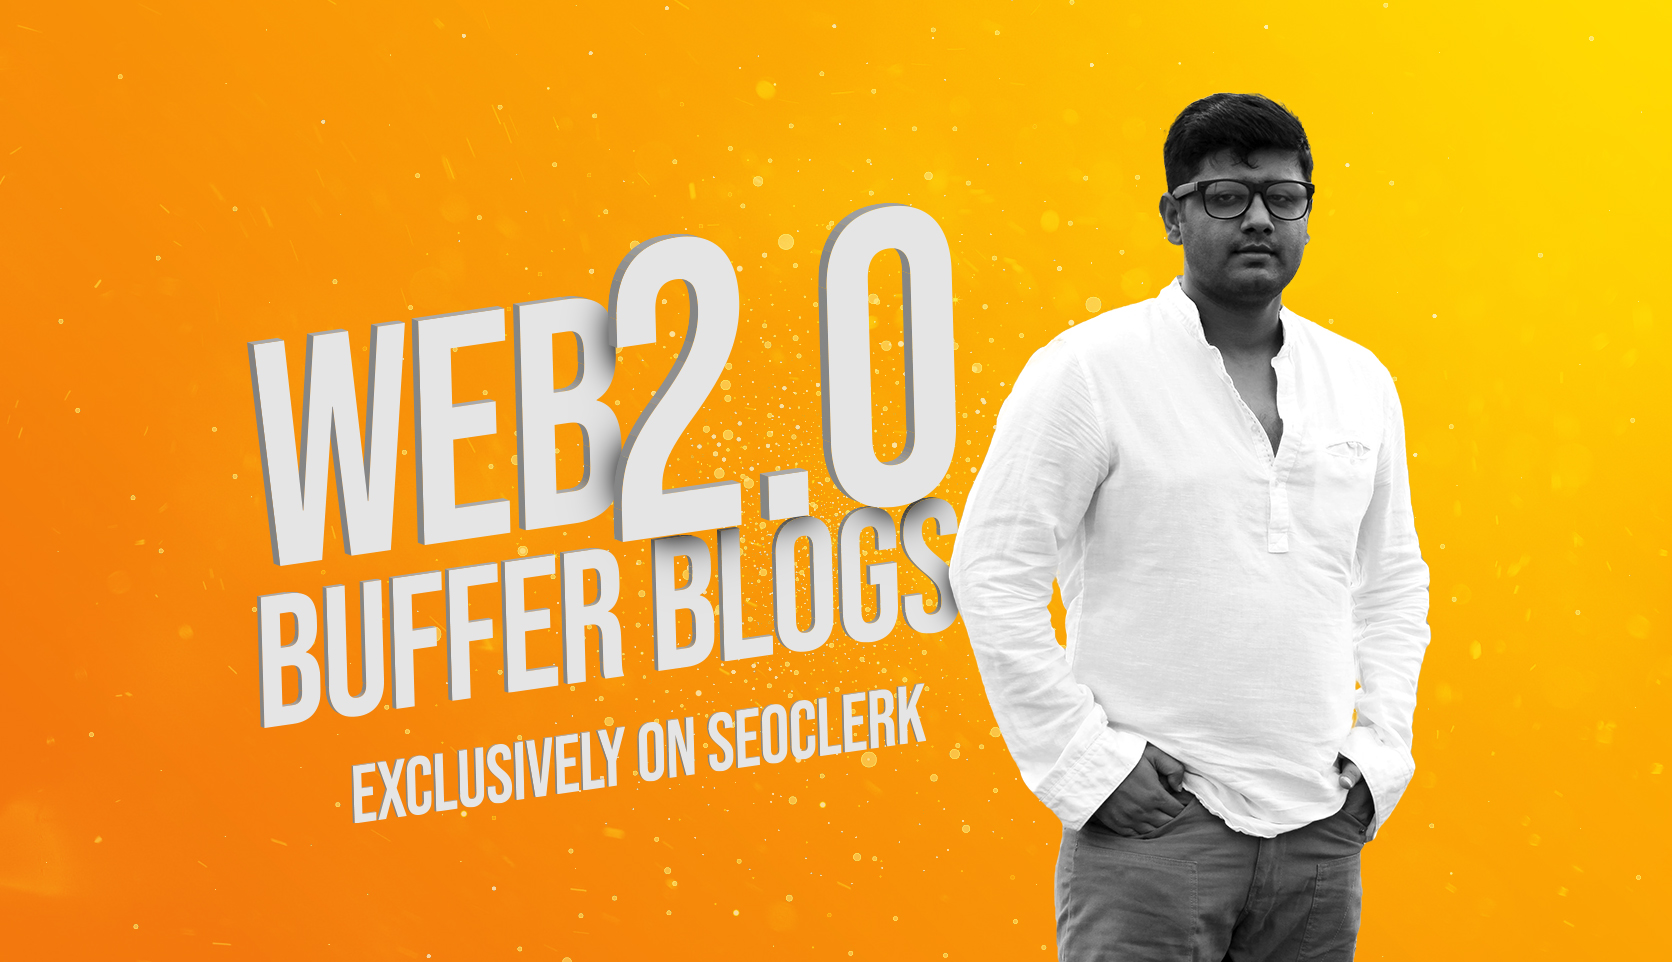 Handmade 10 Web 2.0 Buffer Blogs With Login